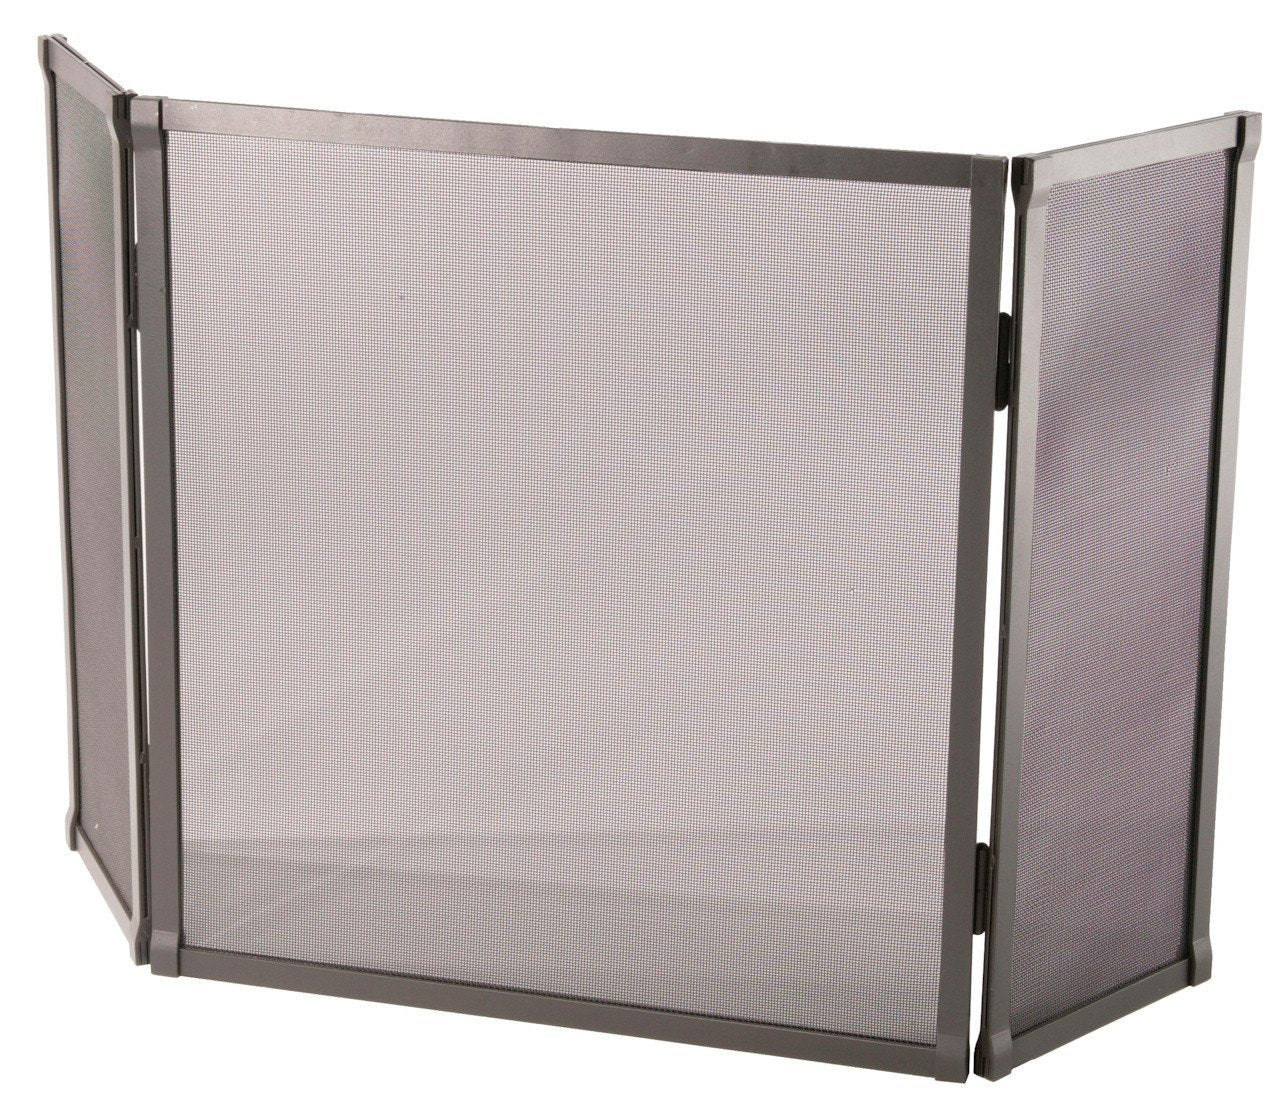 Full Faced Fire Screen Triple Pane 3981 Product Photo